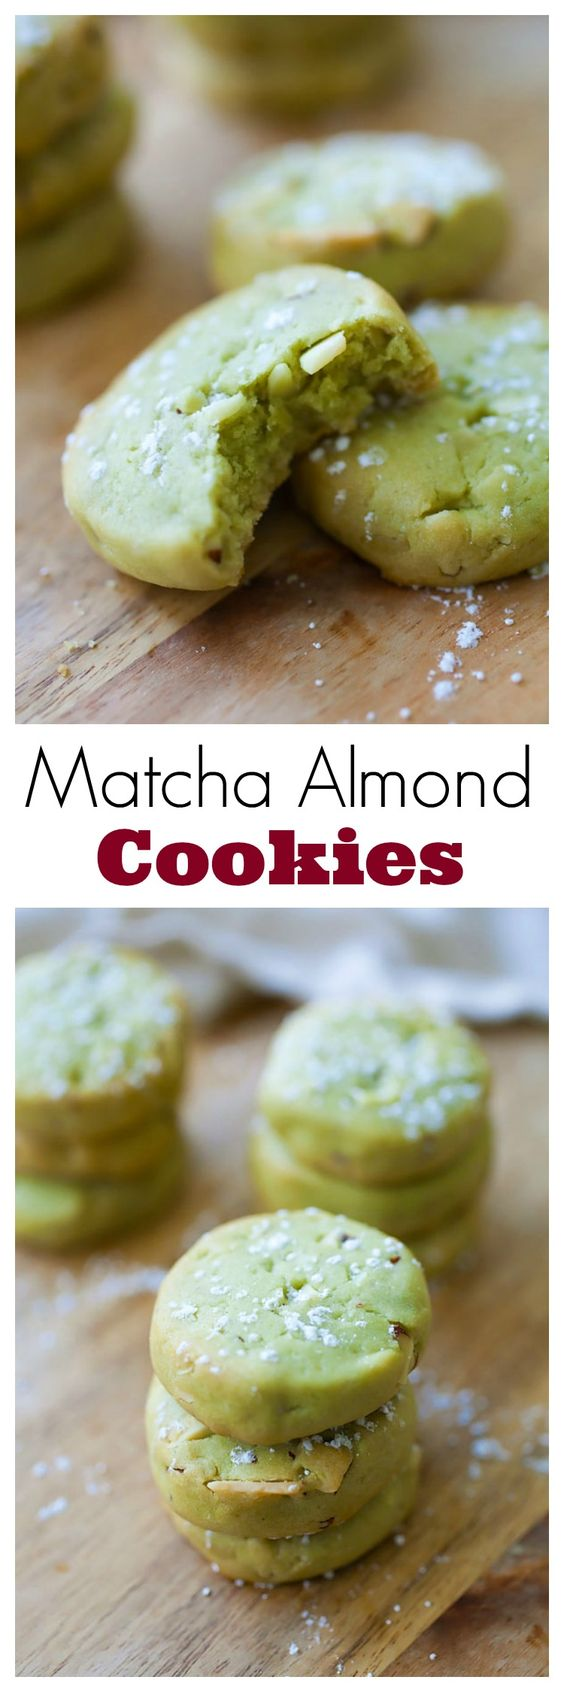 ... matcha (green tea) cookies with almond. Super easy matcha cookies